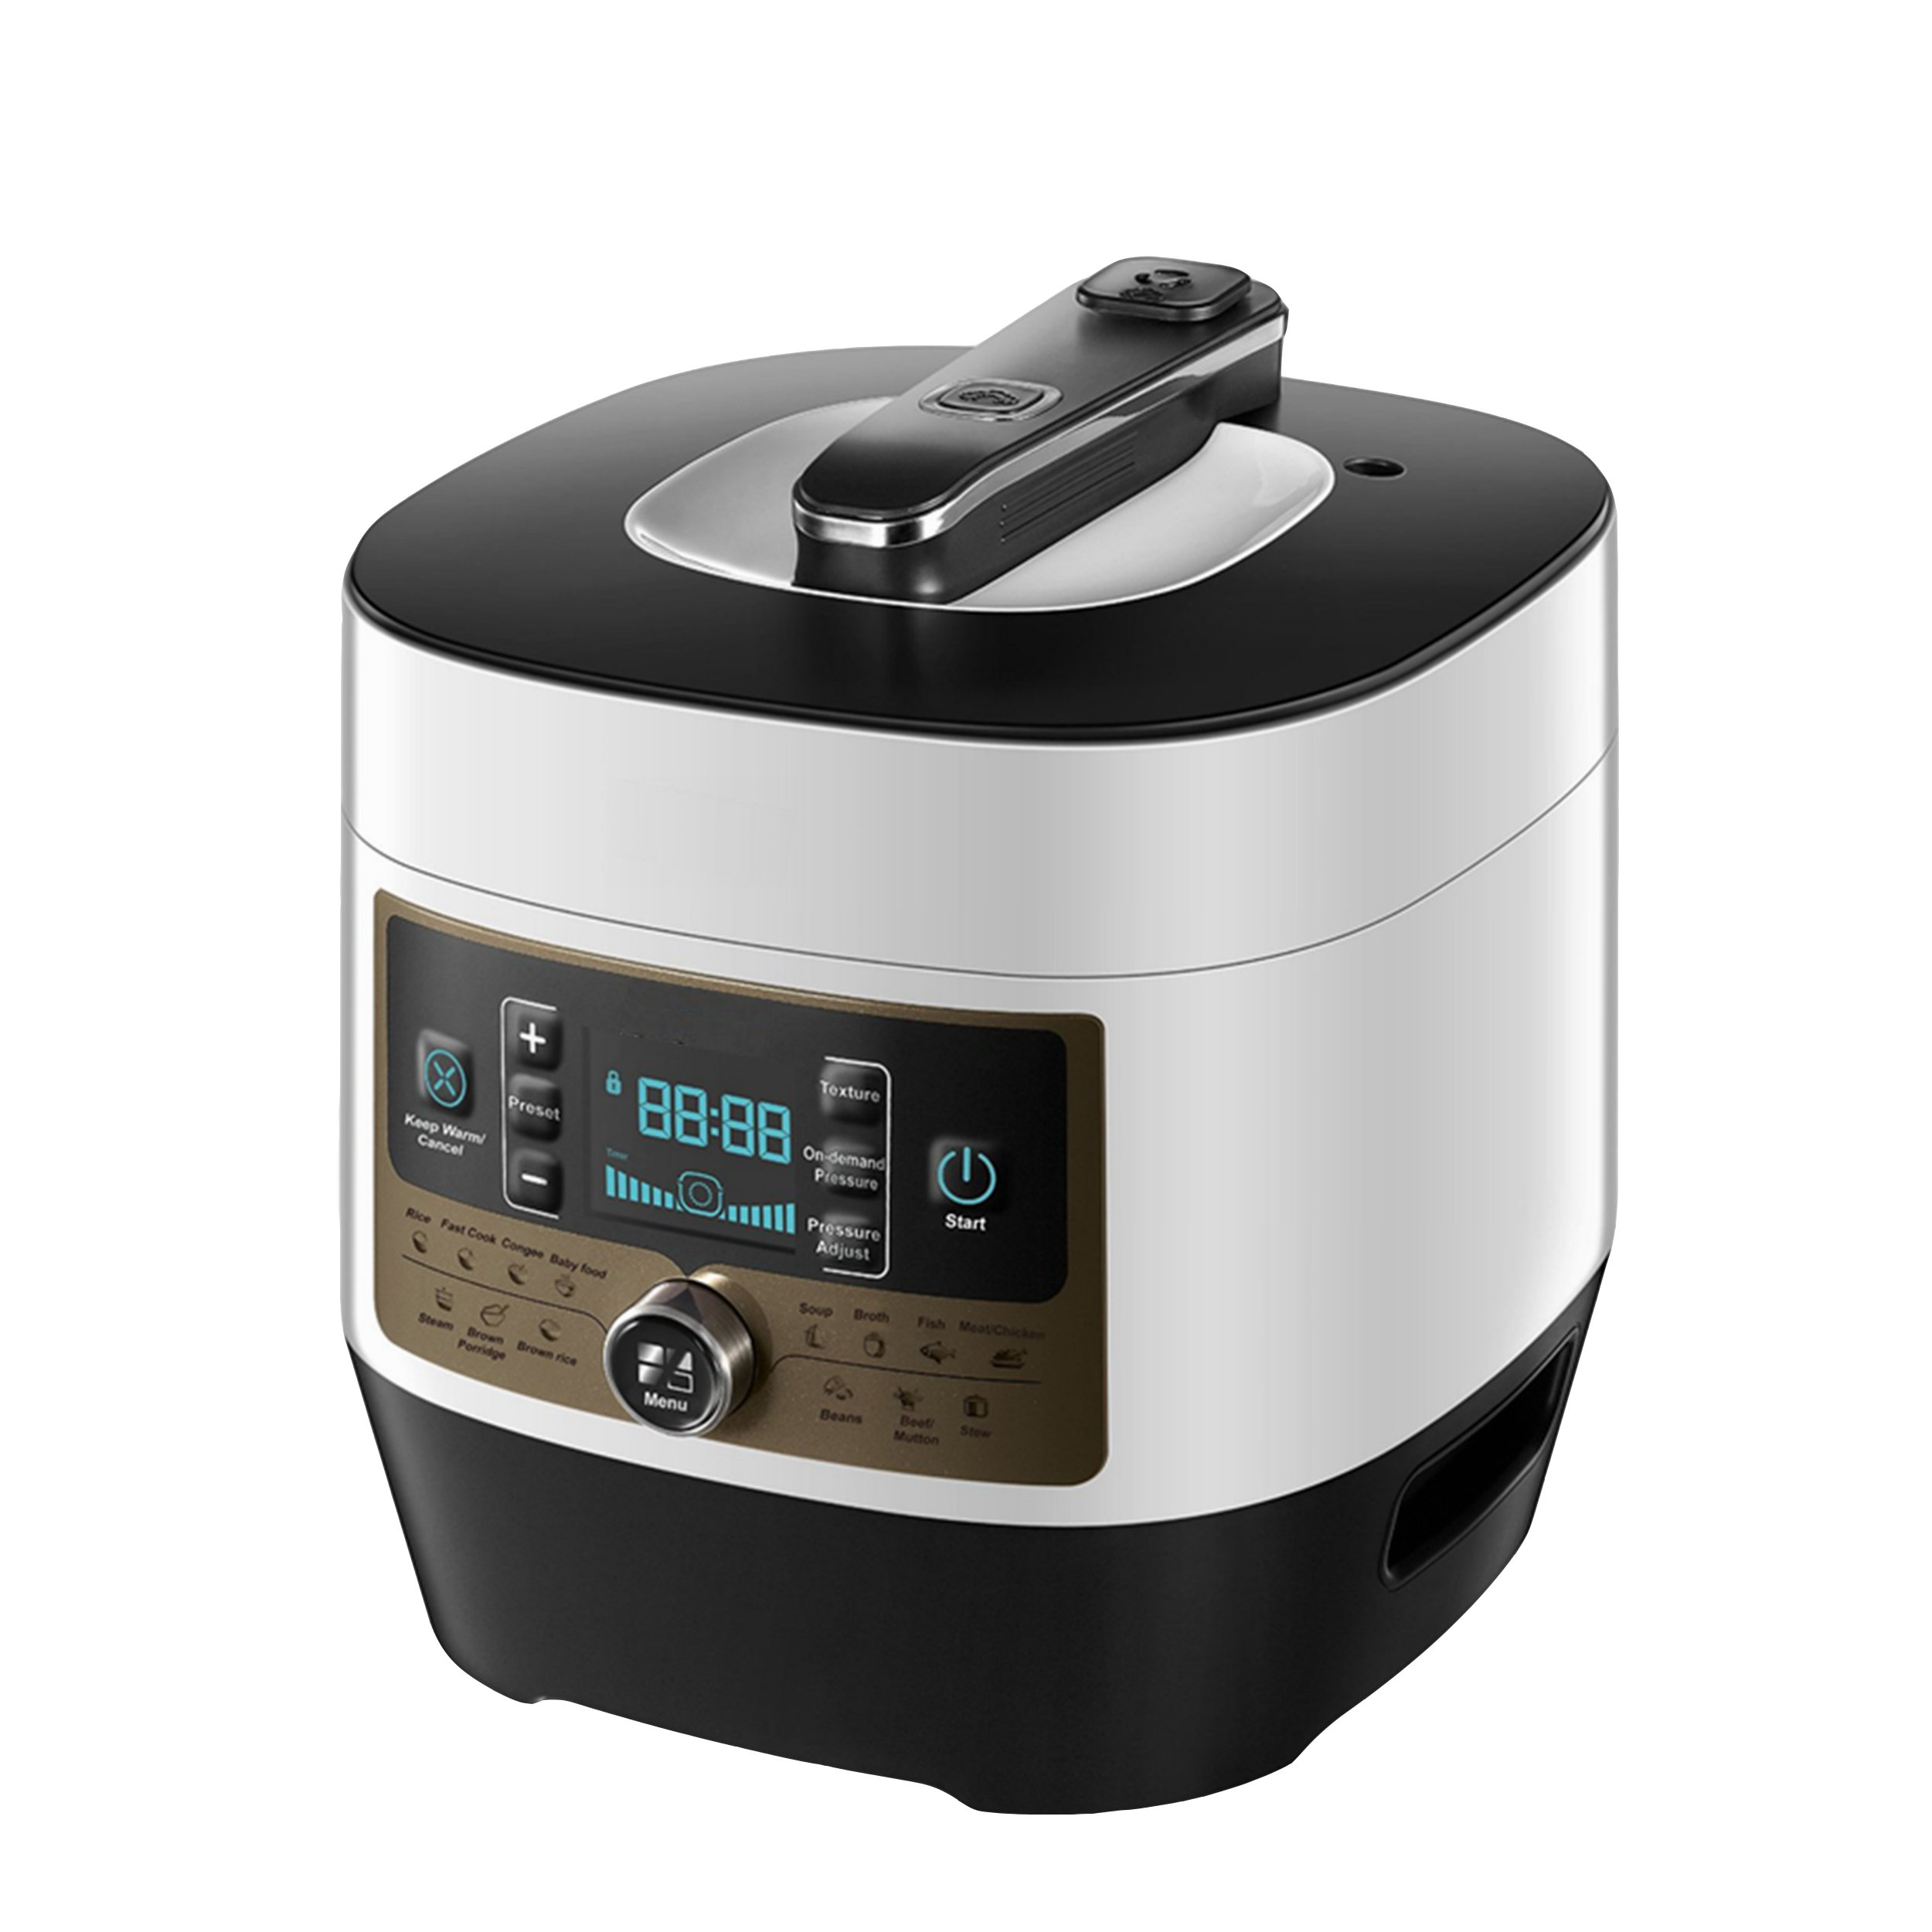 Homevision Technology ECP5014 Multi-Function Pressure Cooker, White